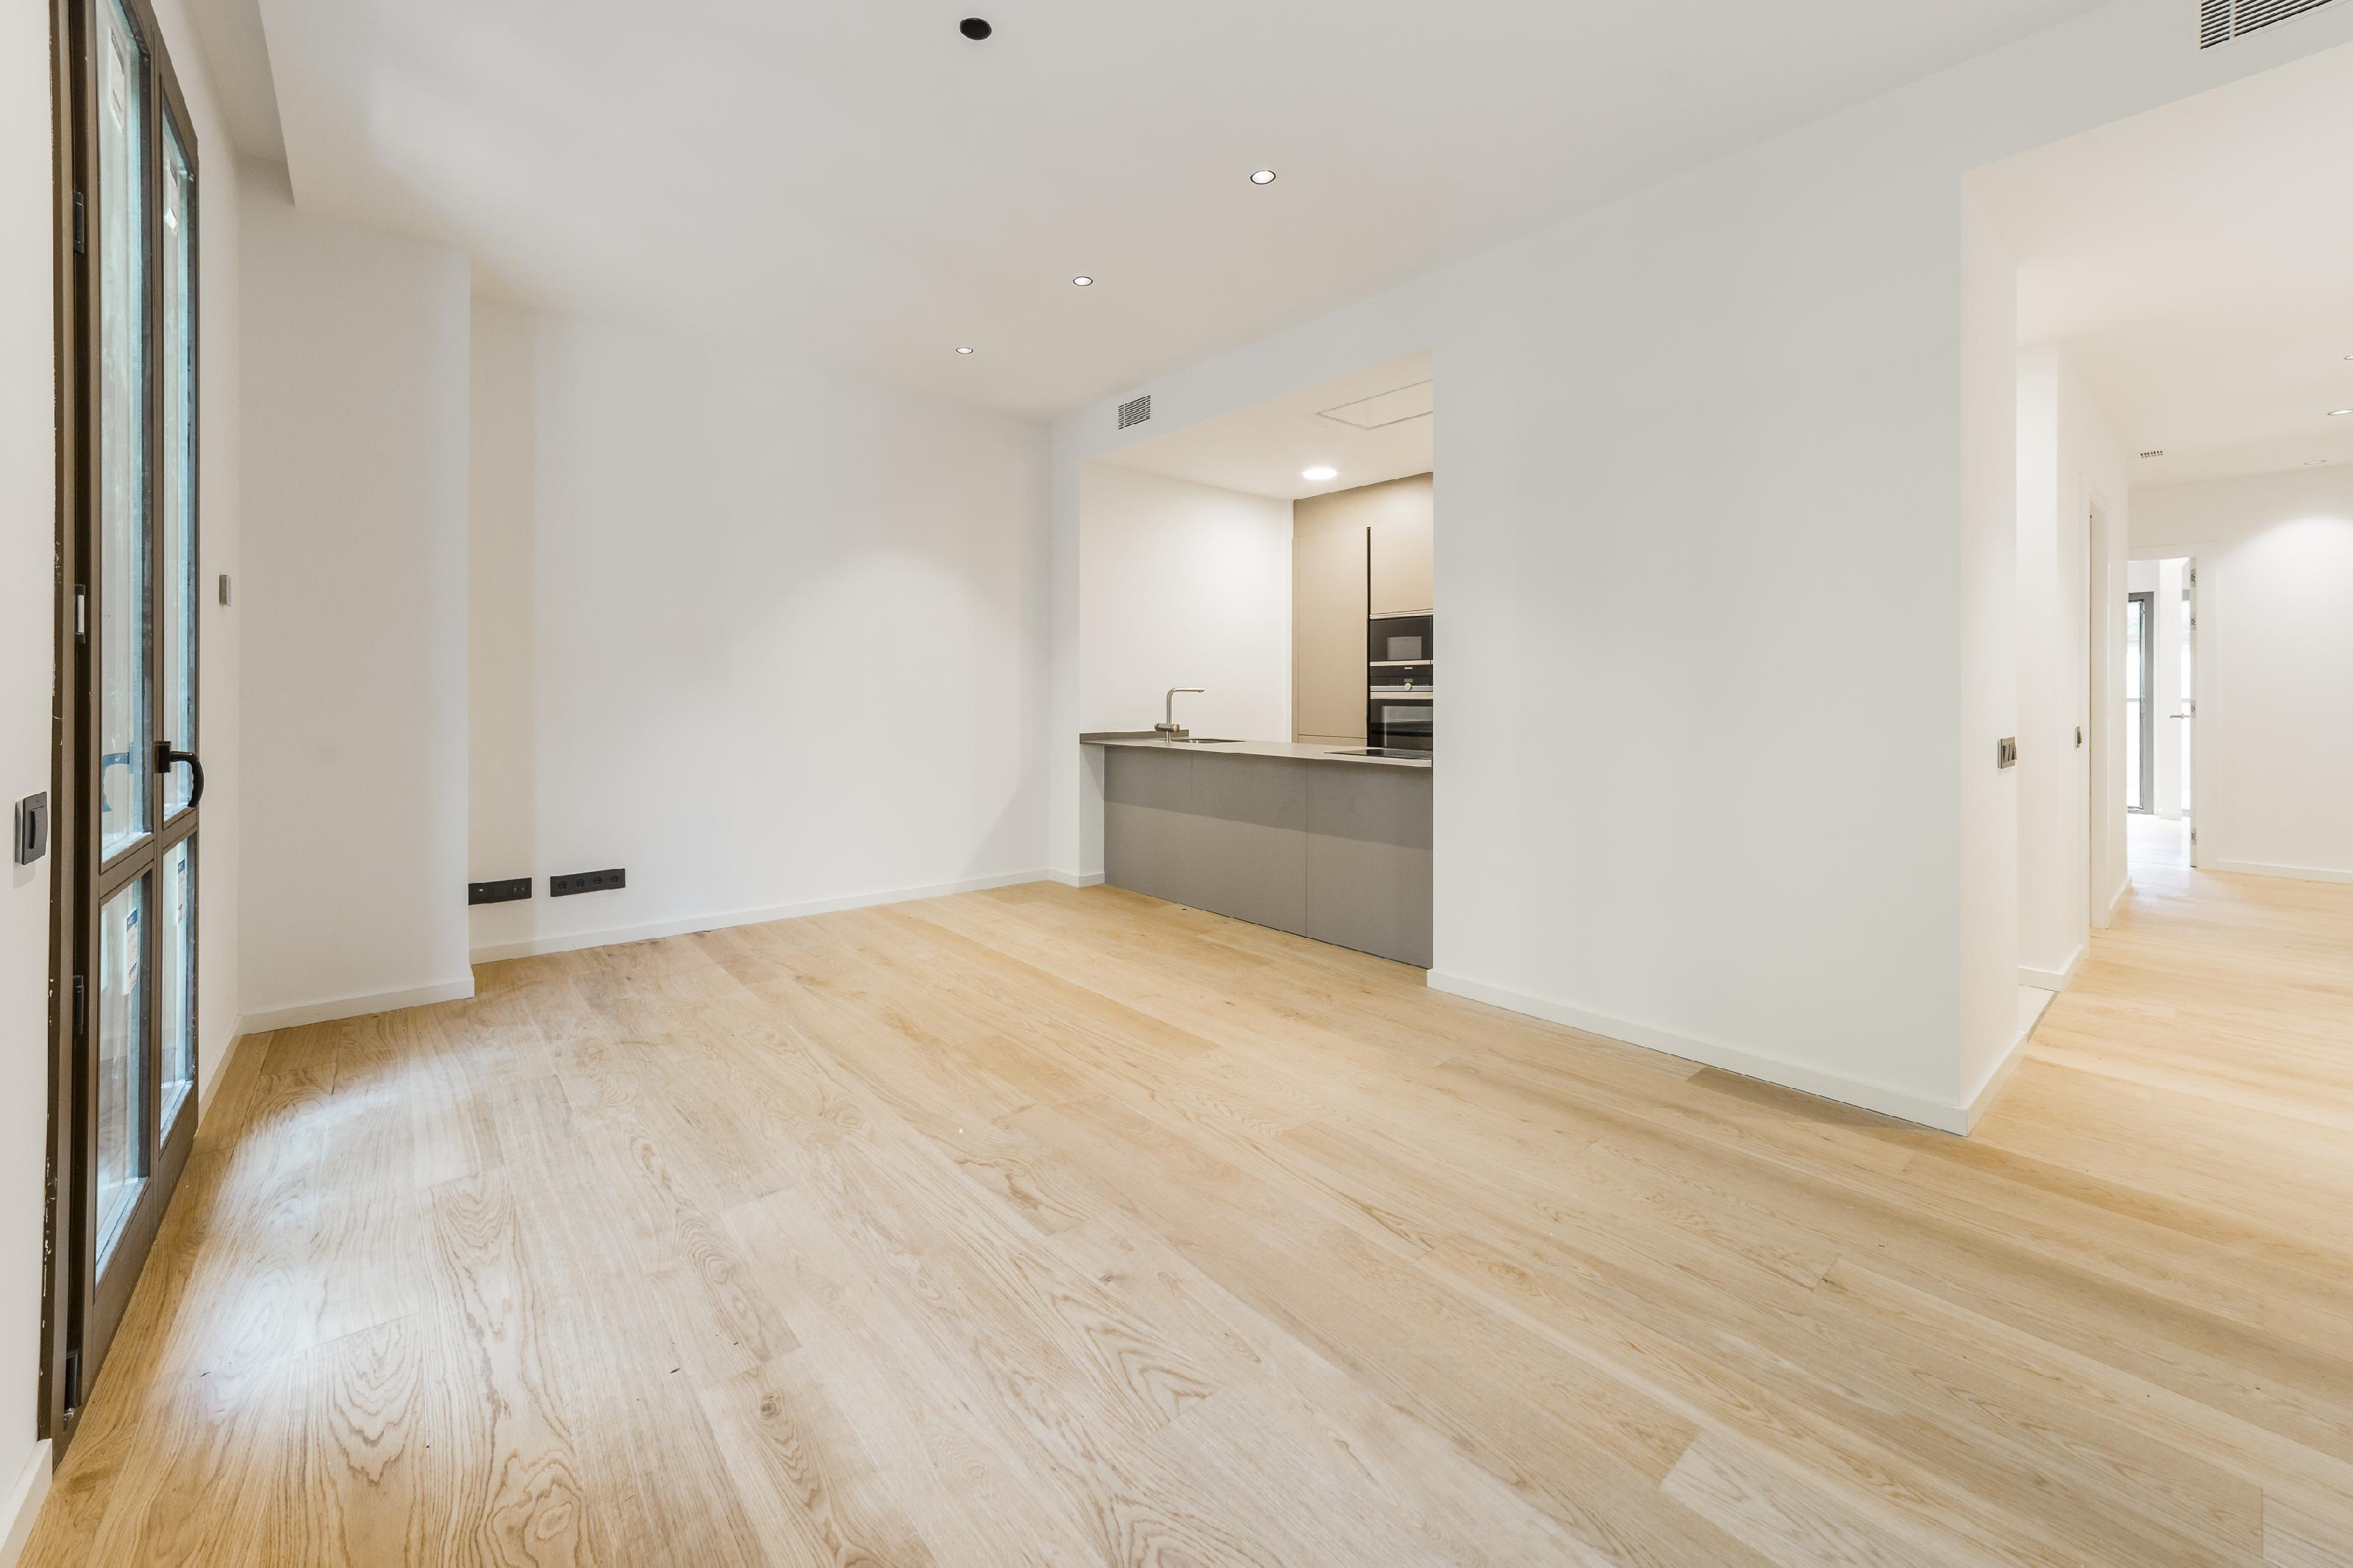 182176 Apartment for sale in Eixample, Old Left Eixample 13